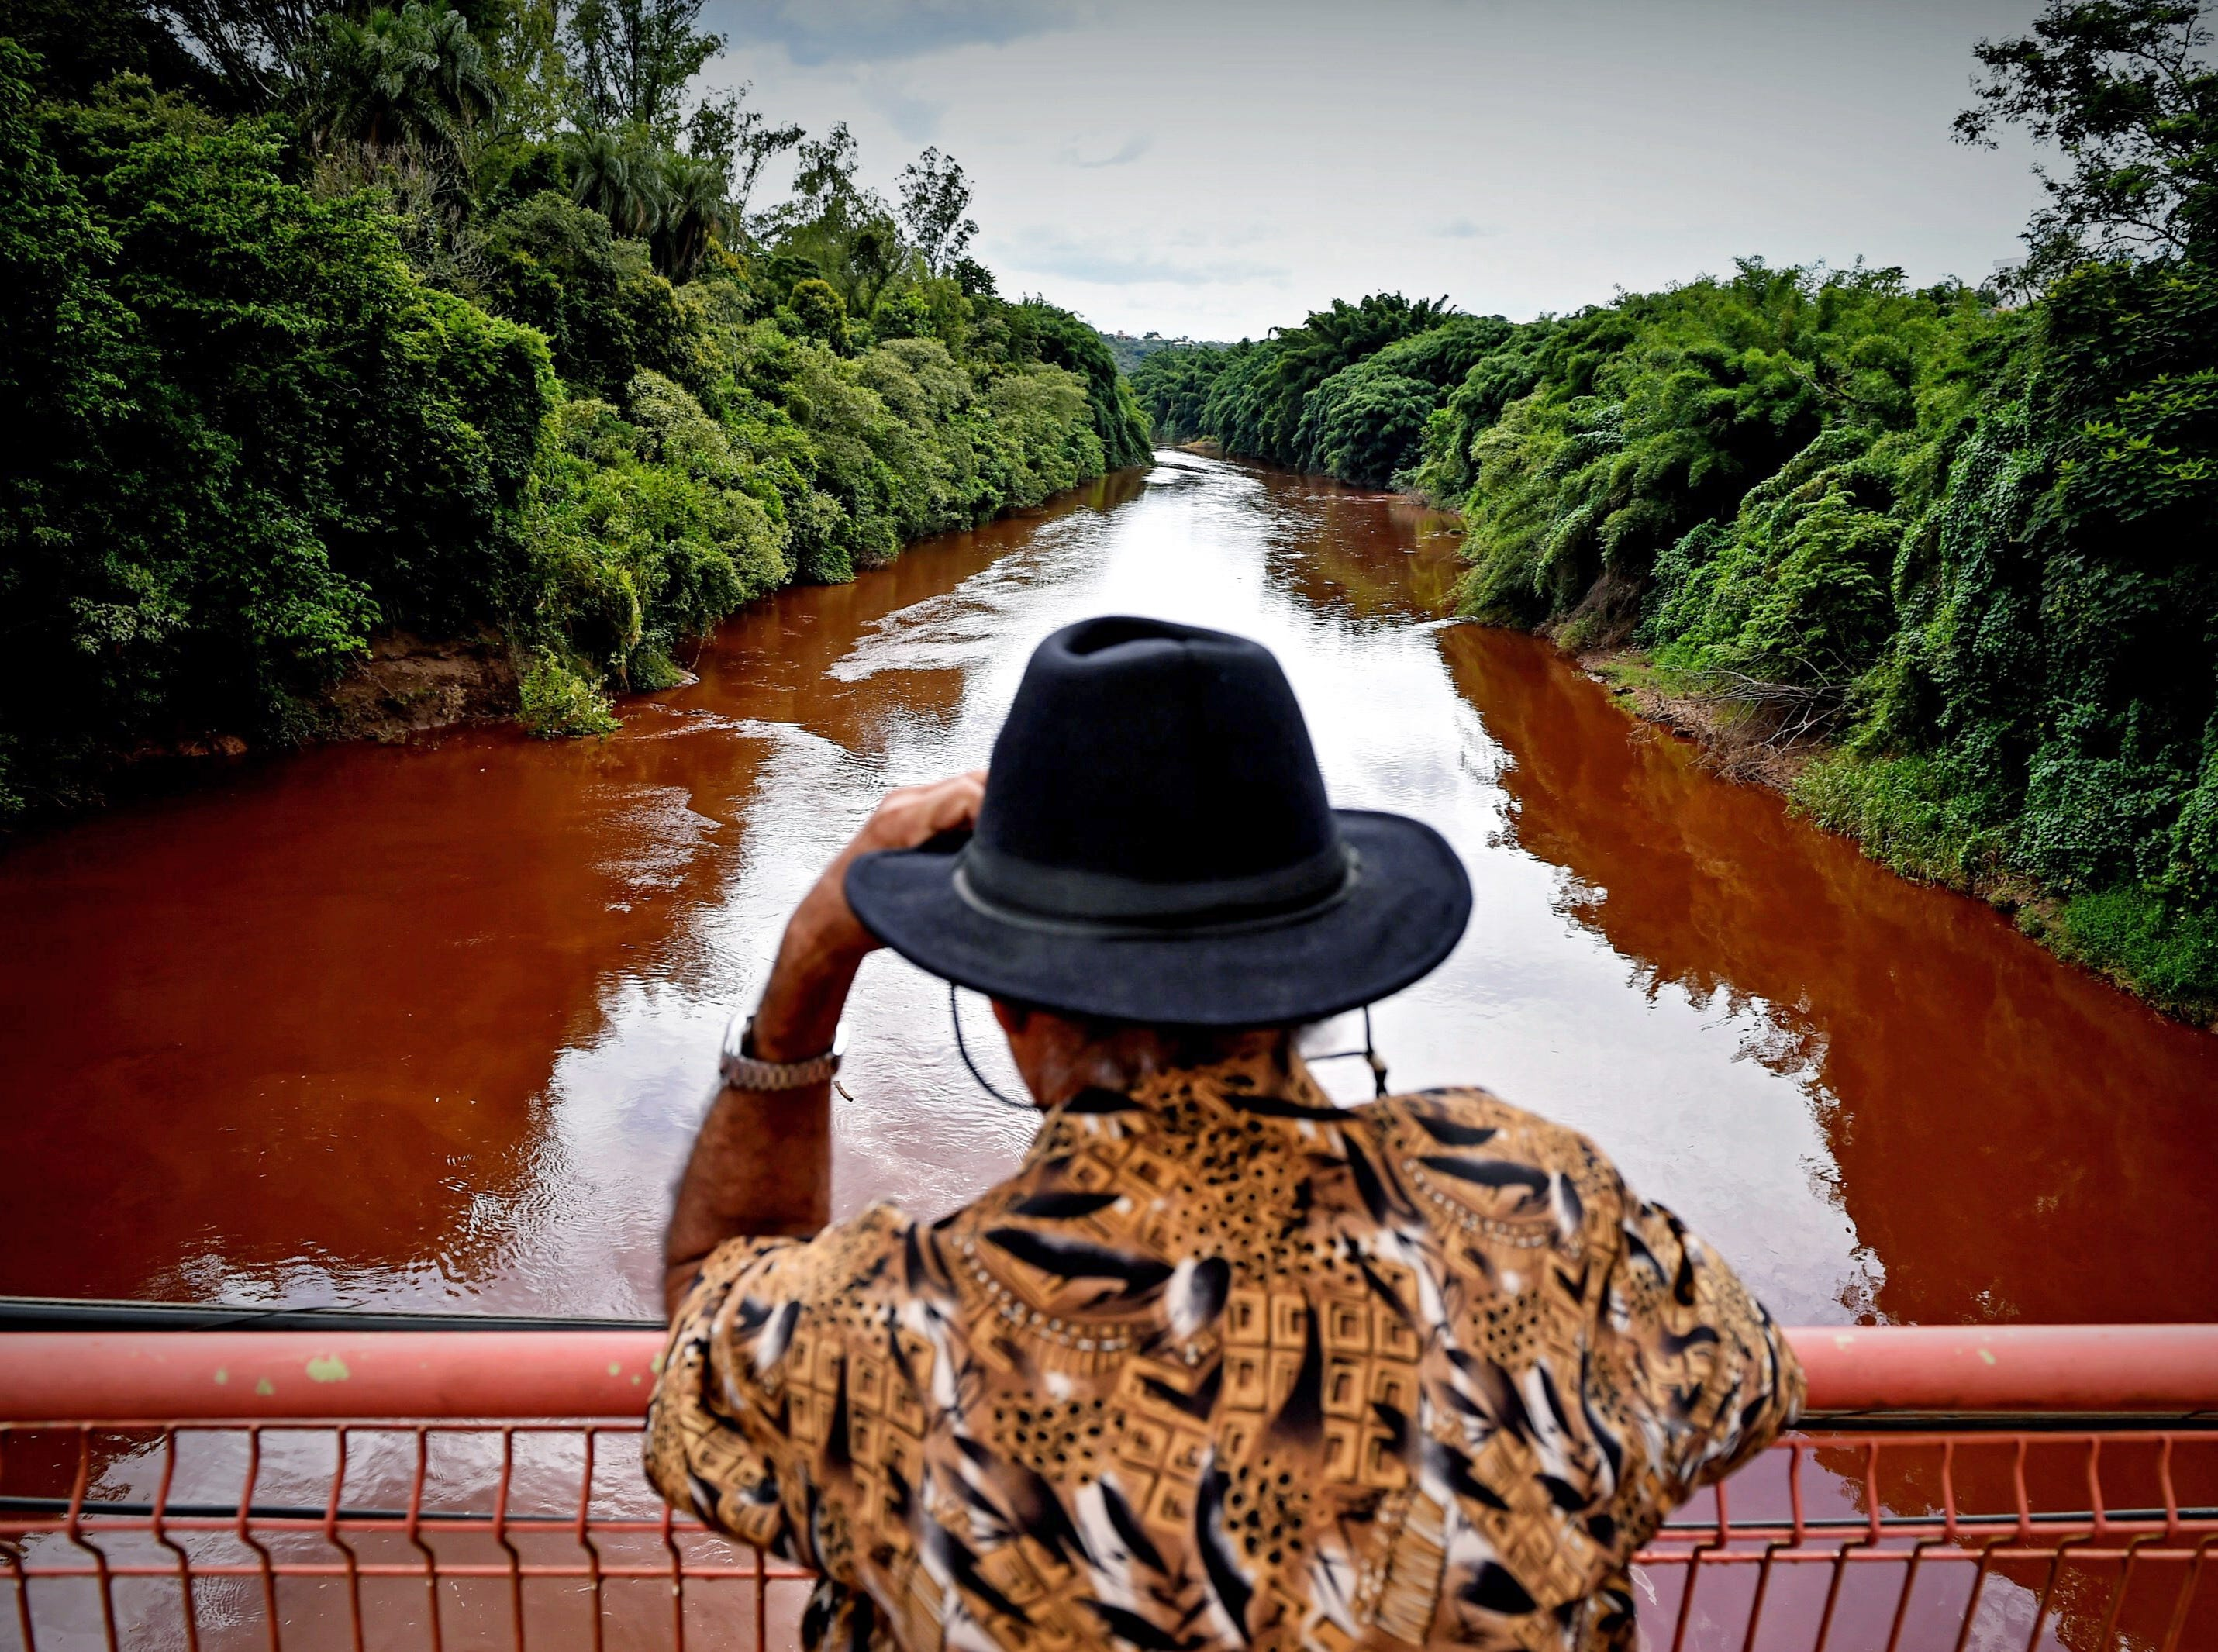 A man watches the Paraopeba River with mud and waste from the disaster caused by dam spill in Brumadinho, Minas Gerais, Brazil on Jan. 26, 2019.